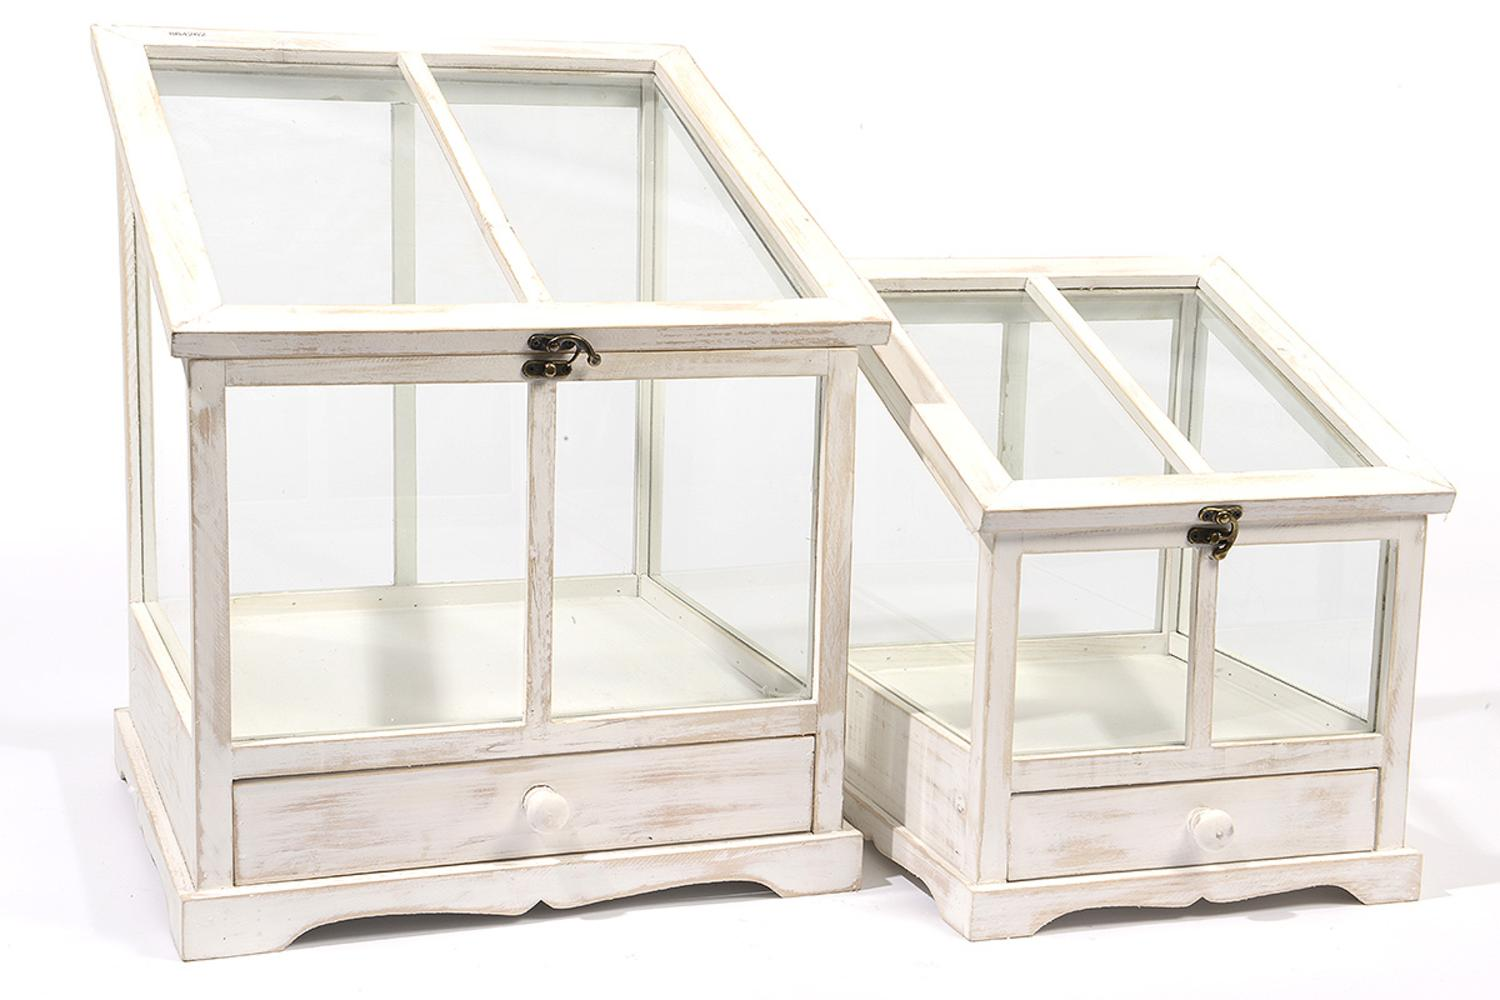 Set Of 2 Tea Garden Distressed White Wash Table Top Terrarium Greenhouses  With Storage Drawers 14